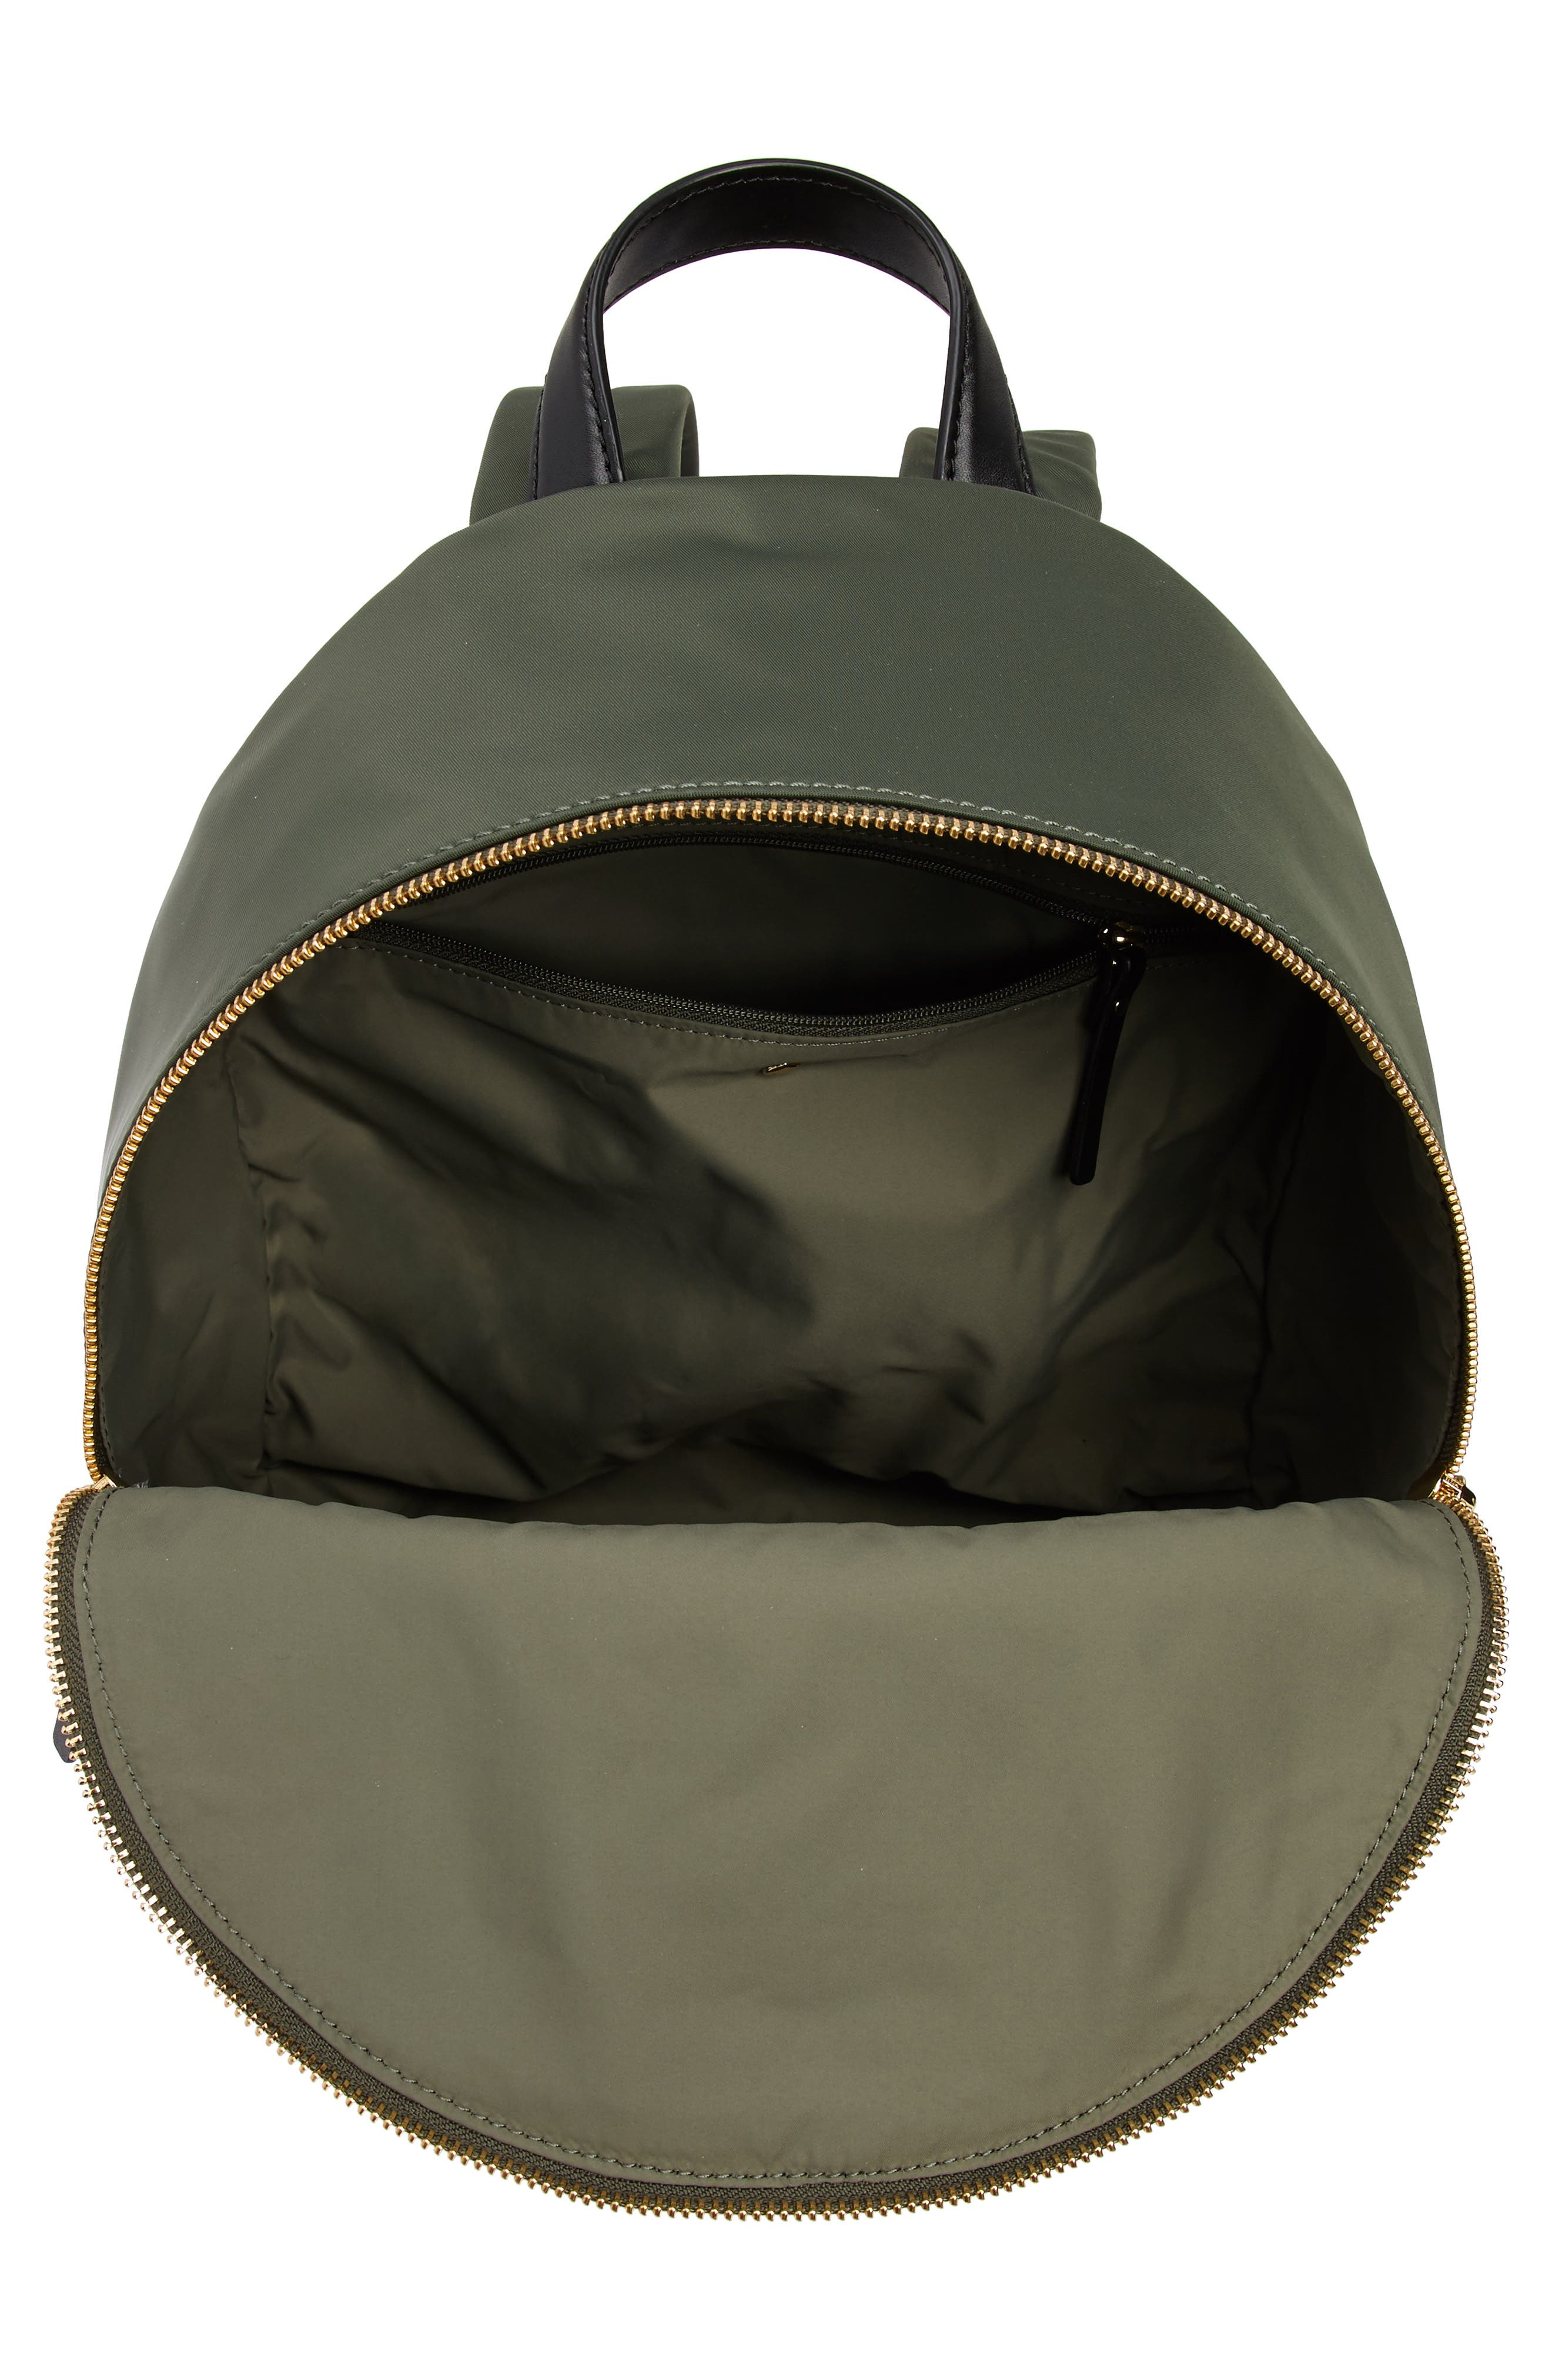 watson lane - hartley nylon backpack,                             Alternate thumbnail 4, color,                             316